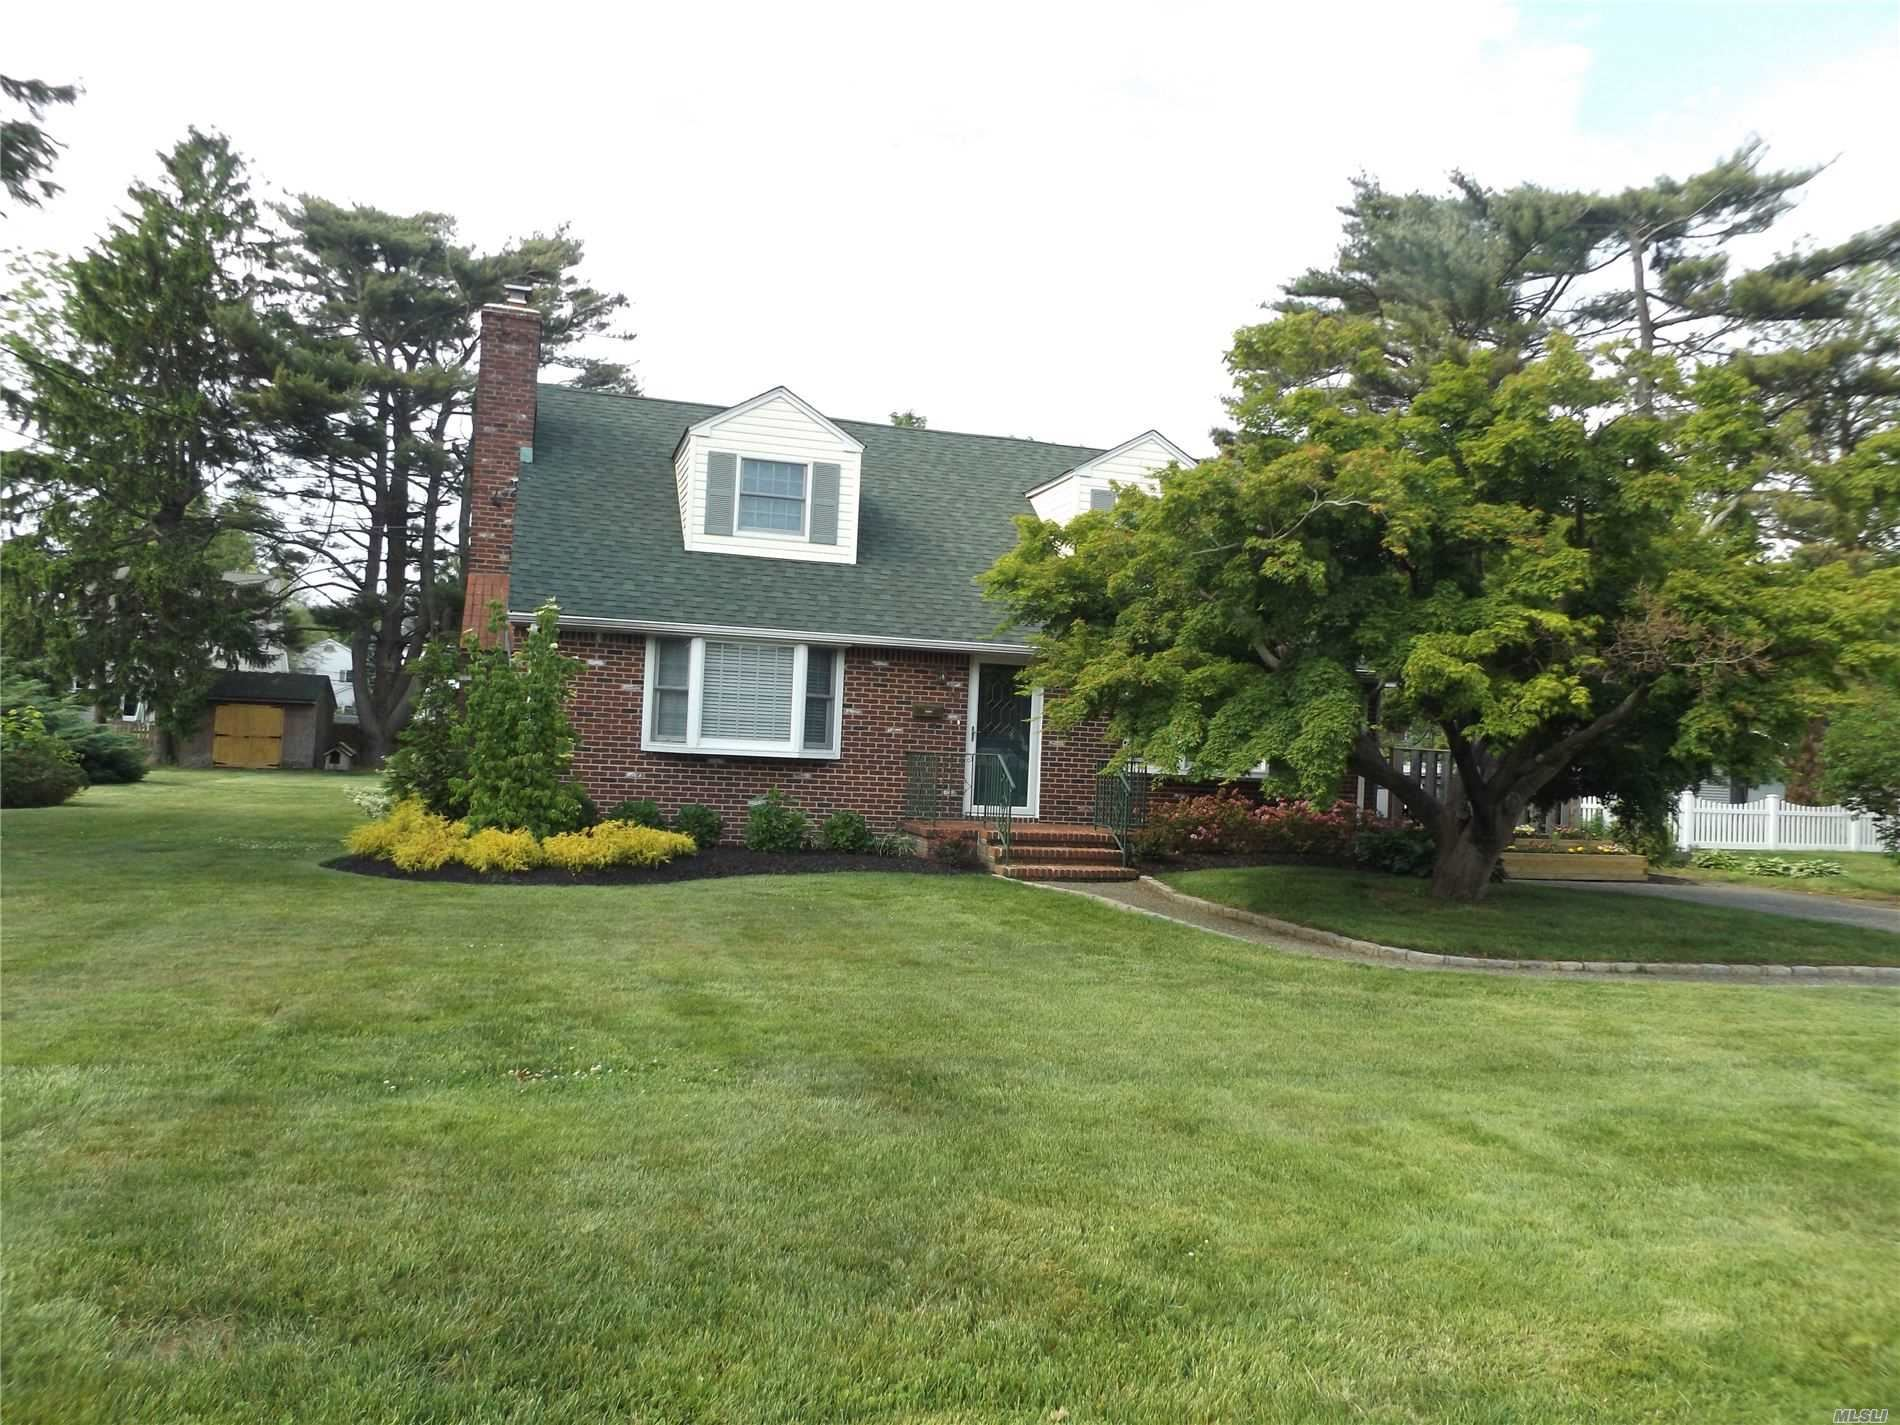 15 South Street, West Islip, NY 11795 - MLS#: 3197170